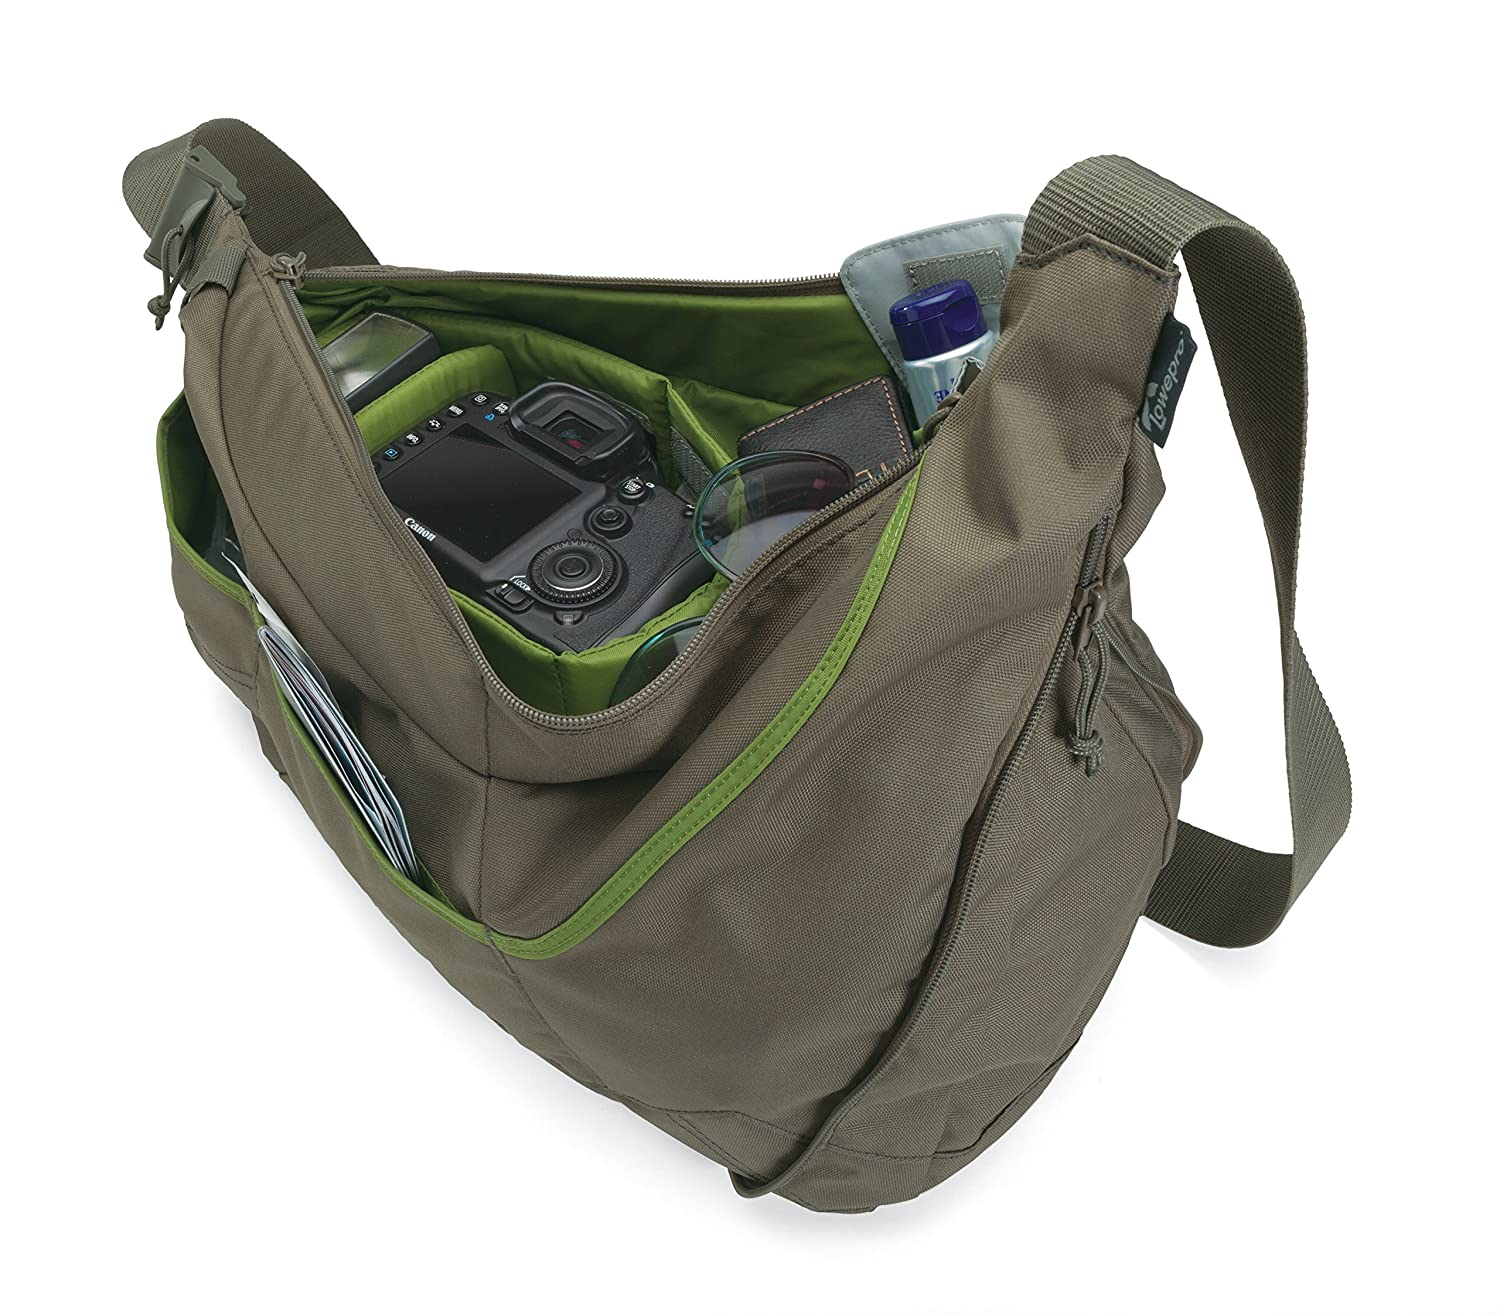 Amazon.com : Lowepro Passport Sling II Camera Bag for DSLR or ...